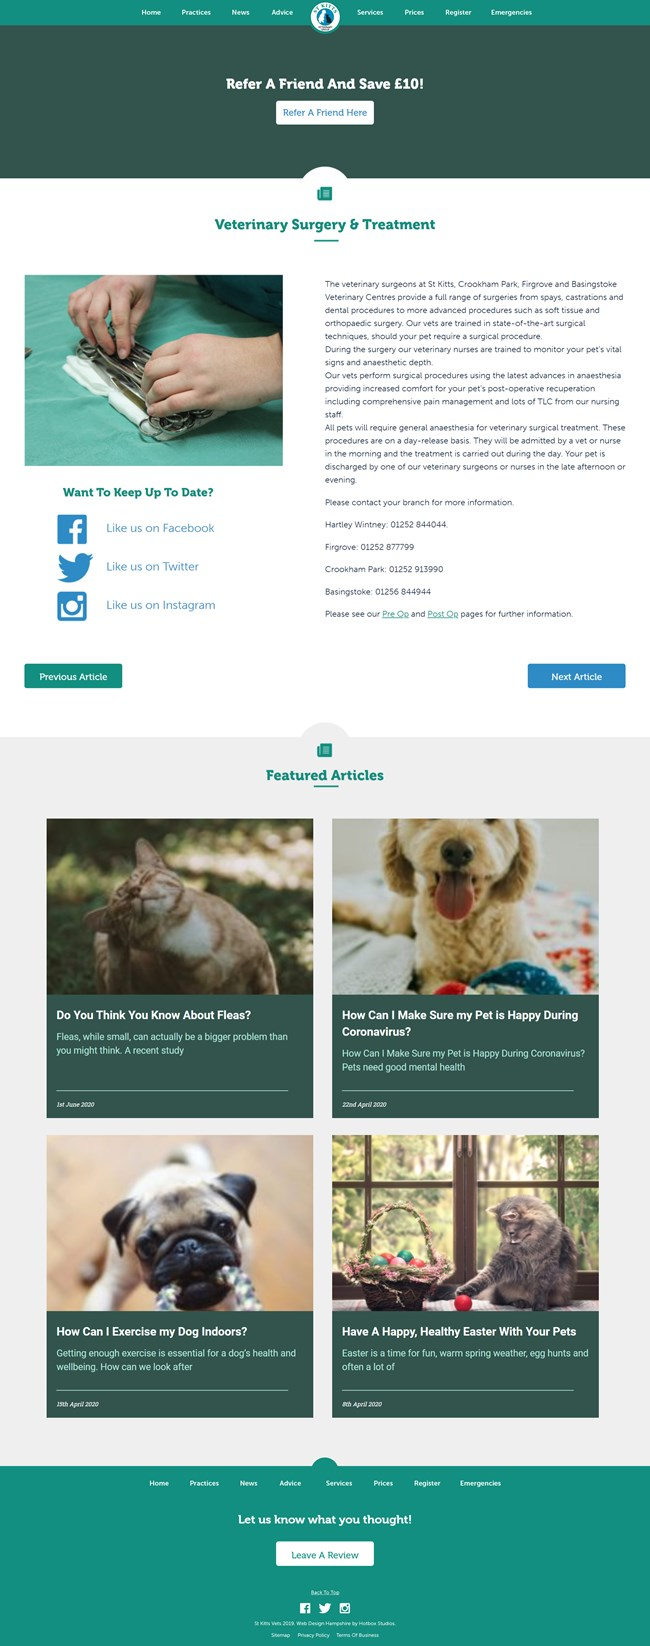 St Kitts Vet Website Design and WordPress Web Development SP013 Services Veterinary Surgery Treatment